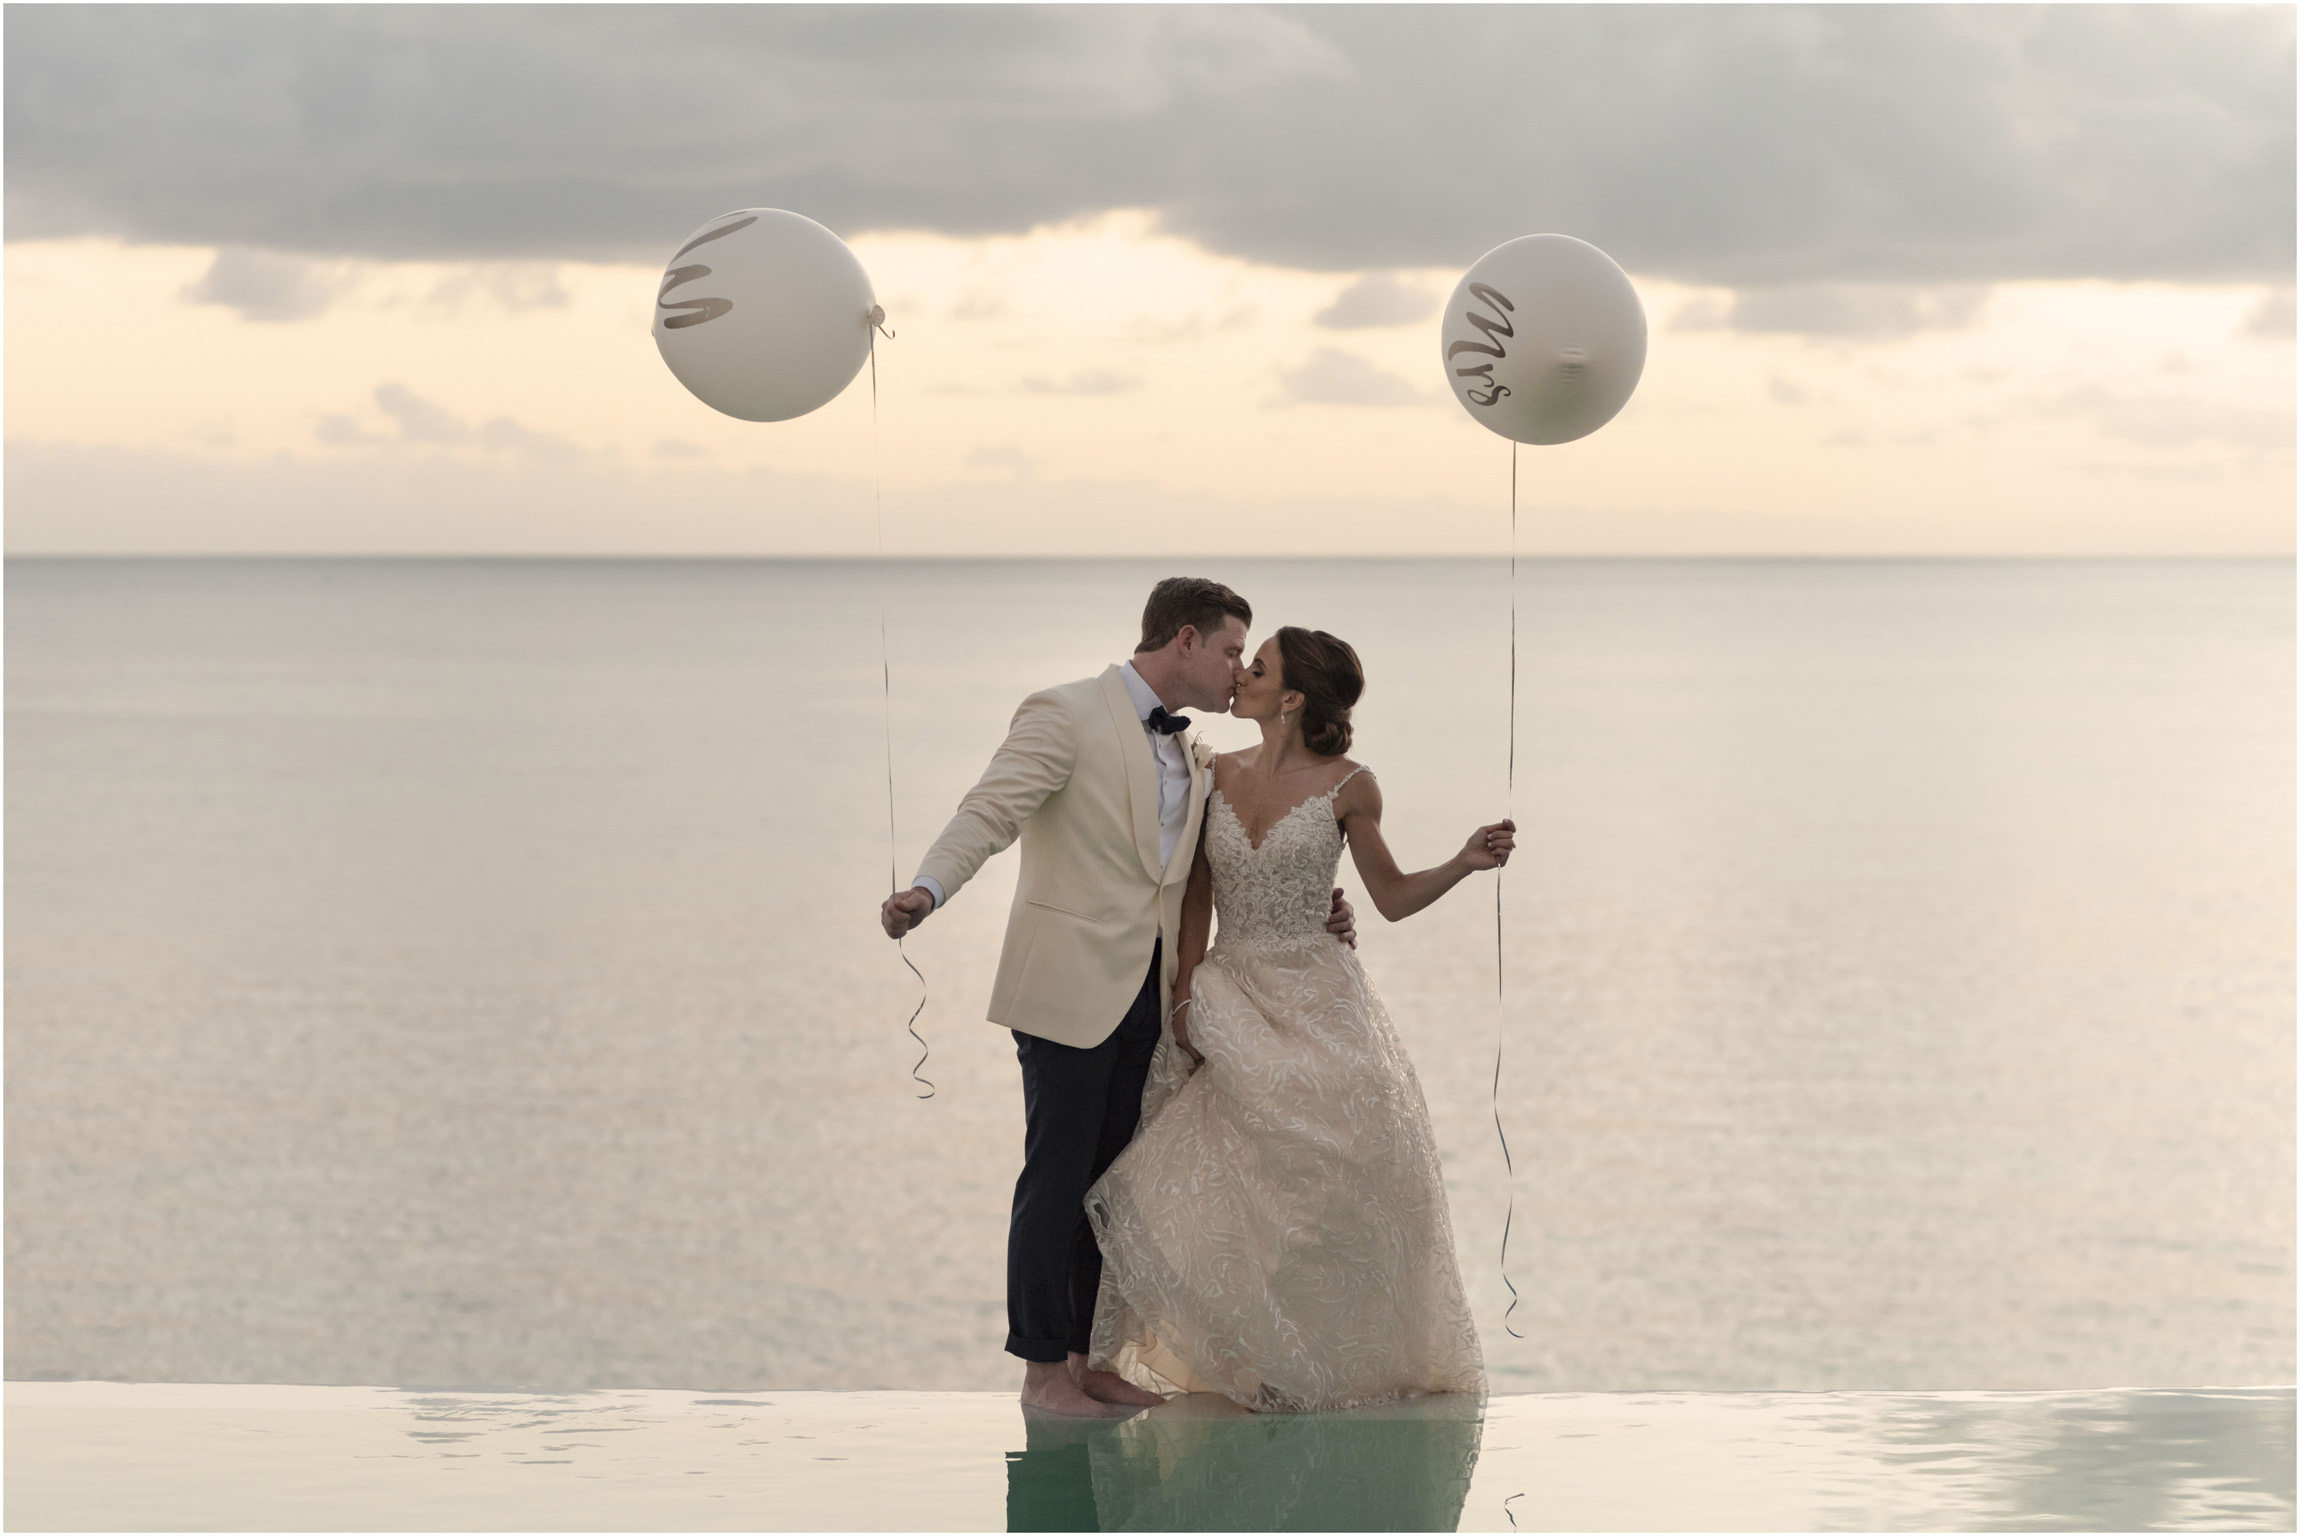 ©Fiander Foto_Bermuda Wedding Photographer_The Reefs_Taylor_Tedd_149.jpg